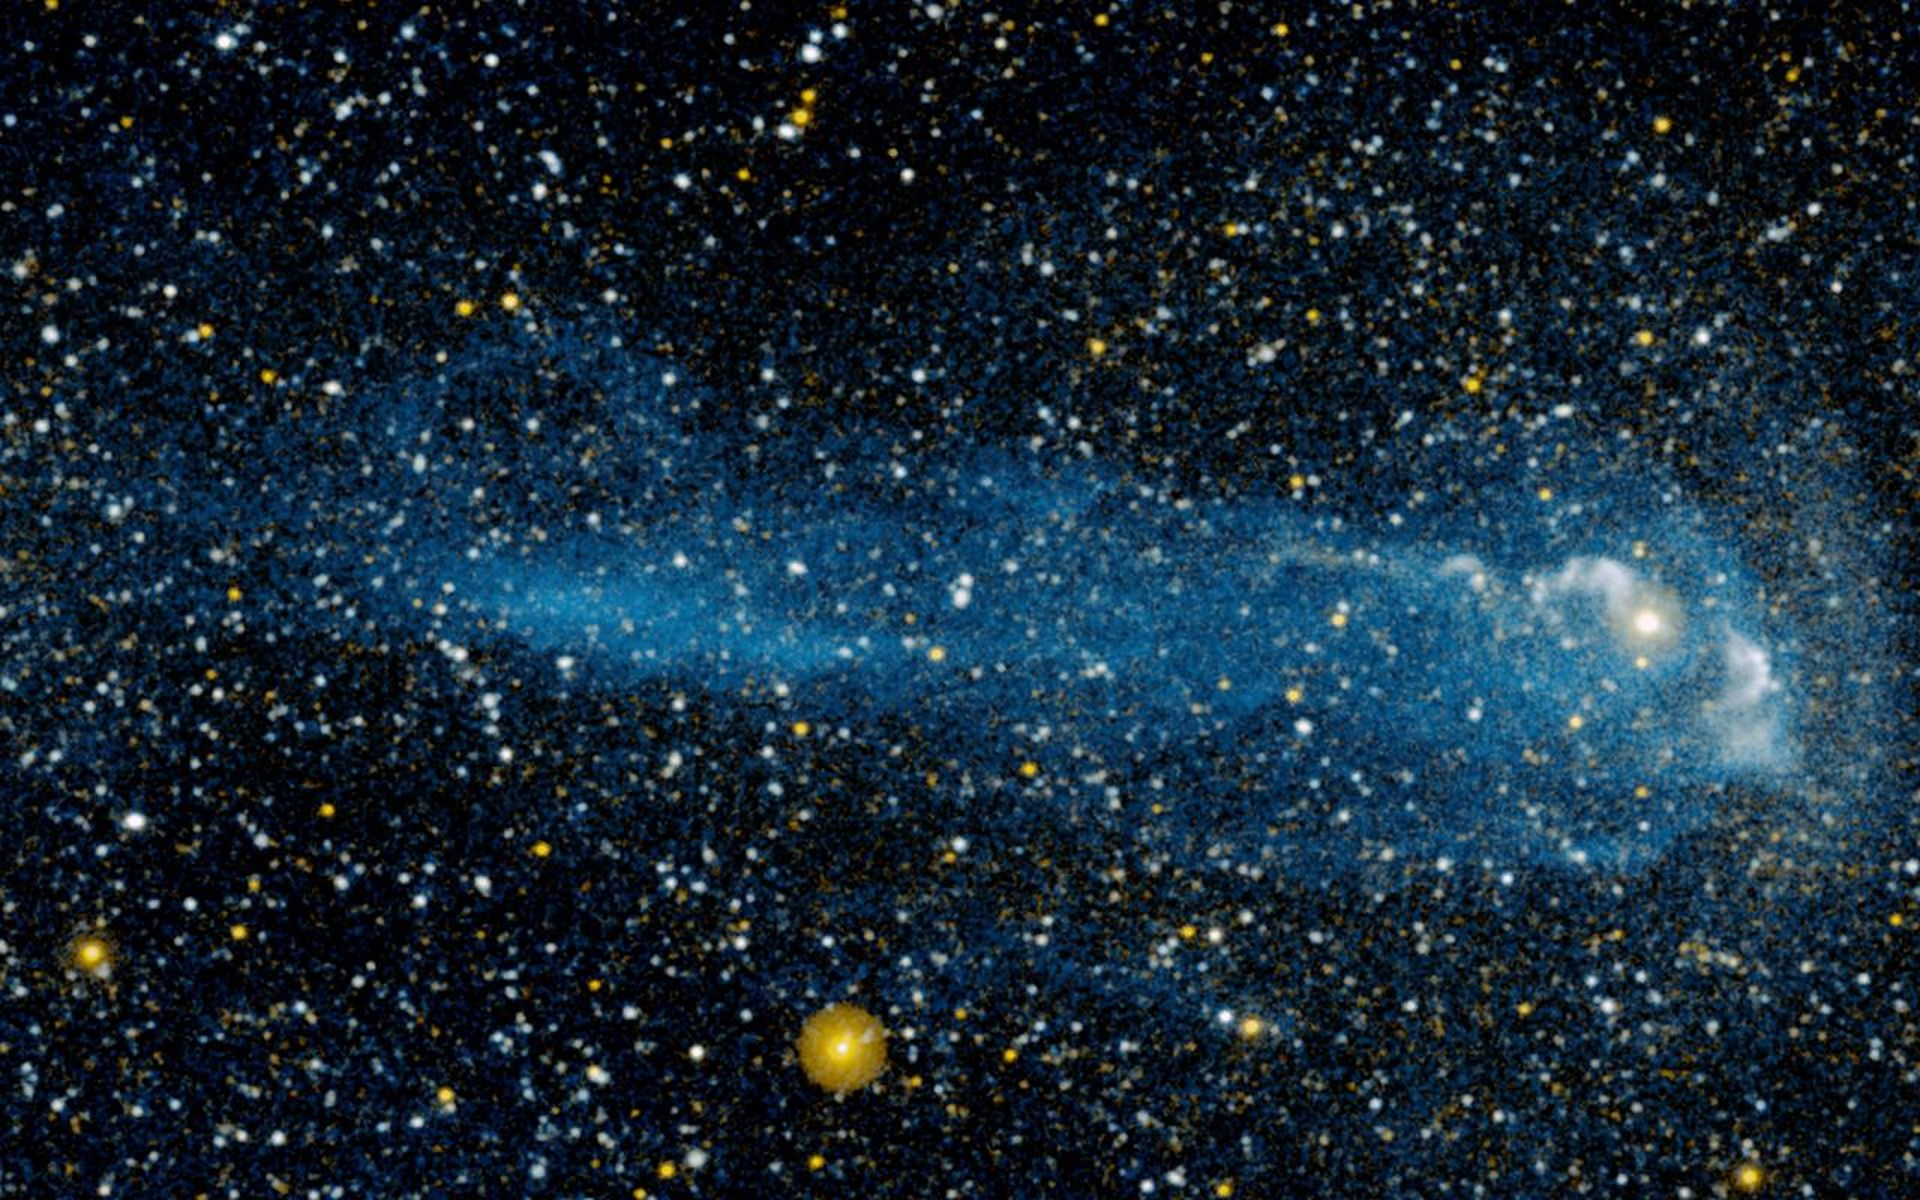 A Close Up View Of Star Racing Through Space Faster Than Speeding Bullet